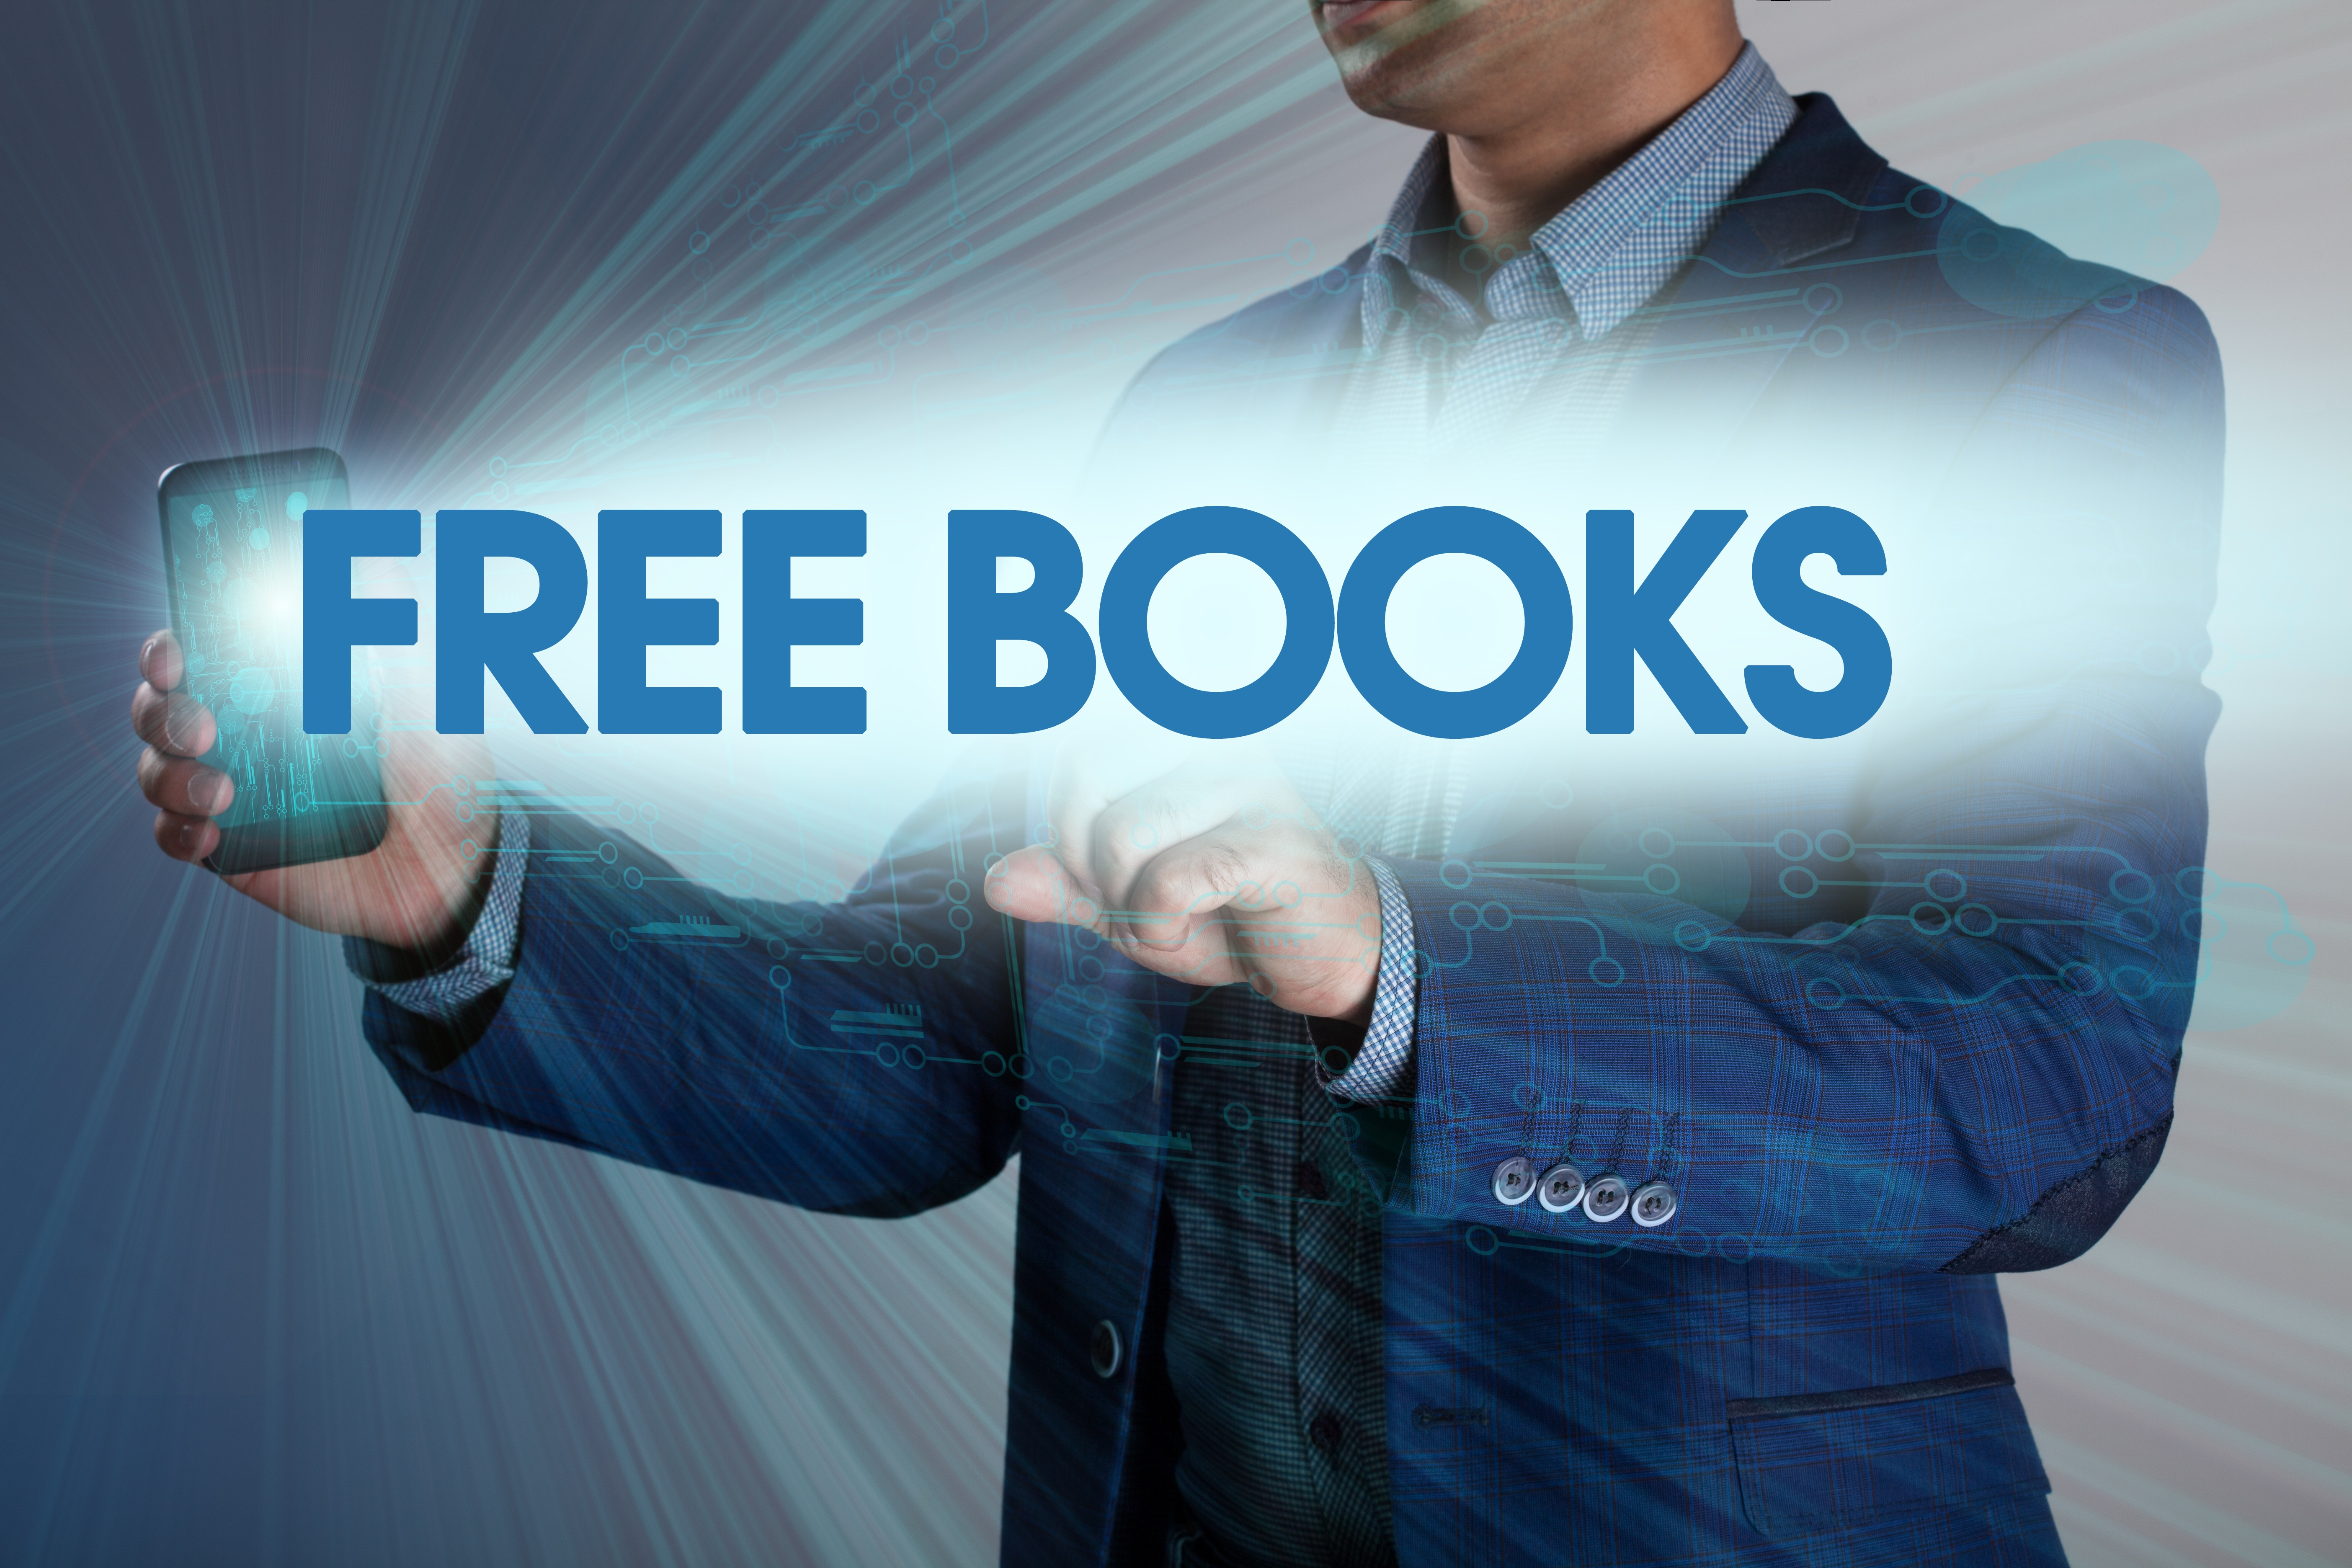 Towson University Bookstore Offers Free Textbooks for 2015-16